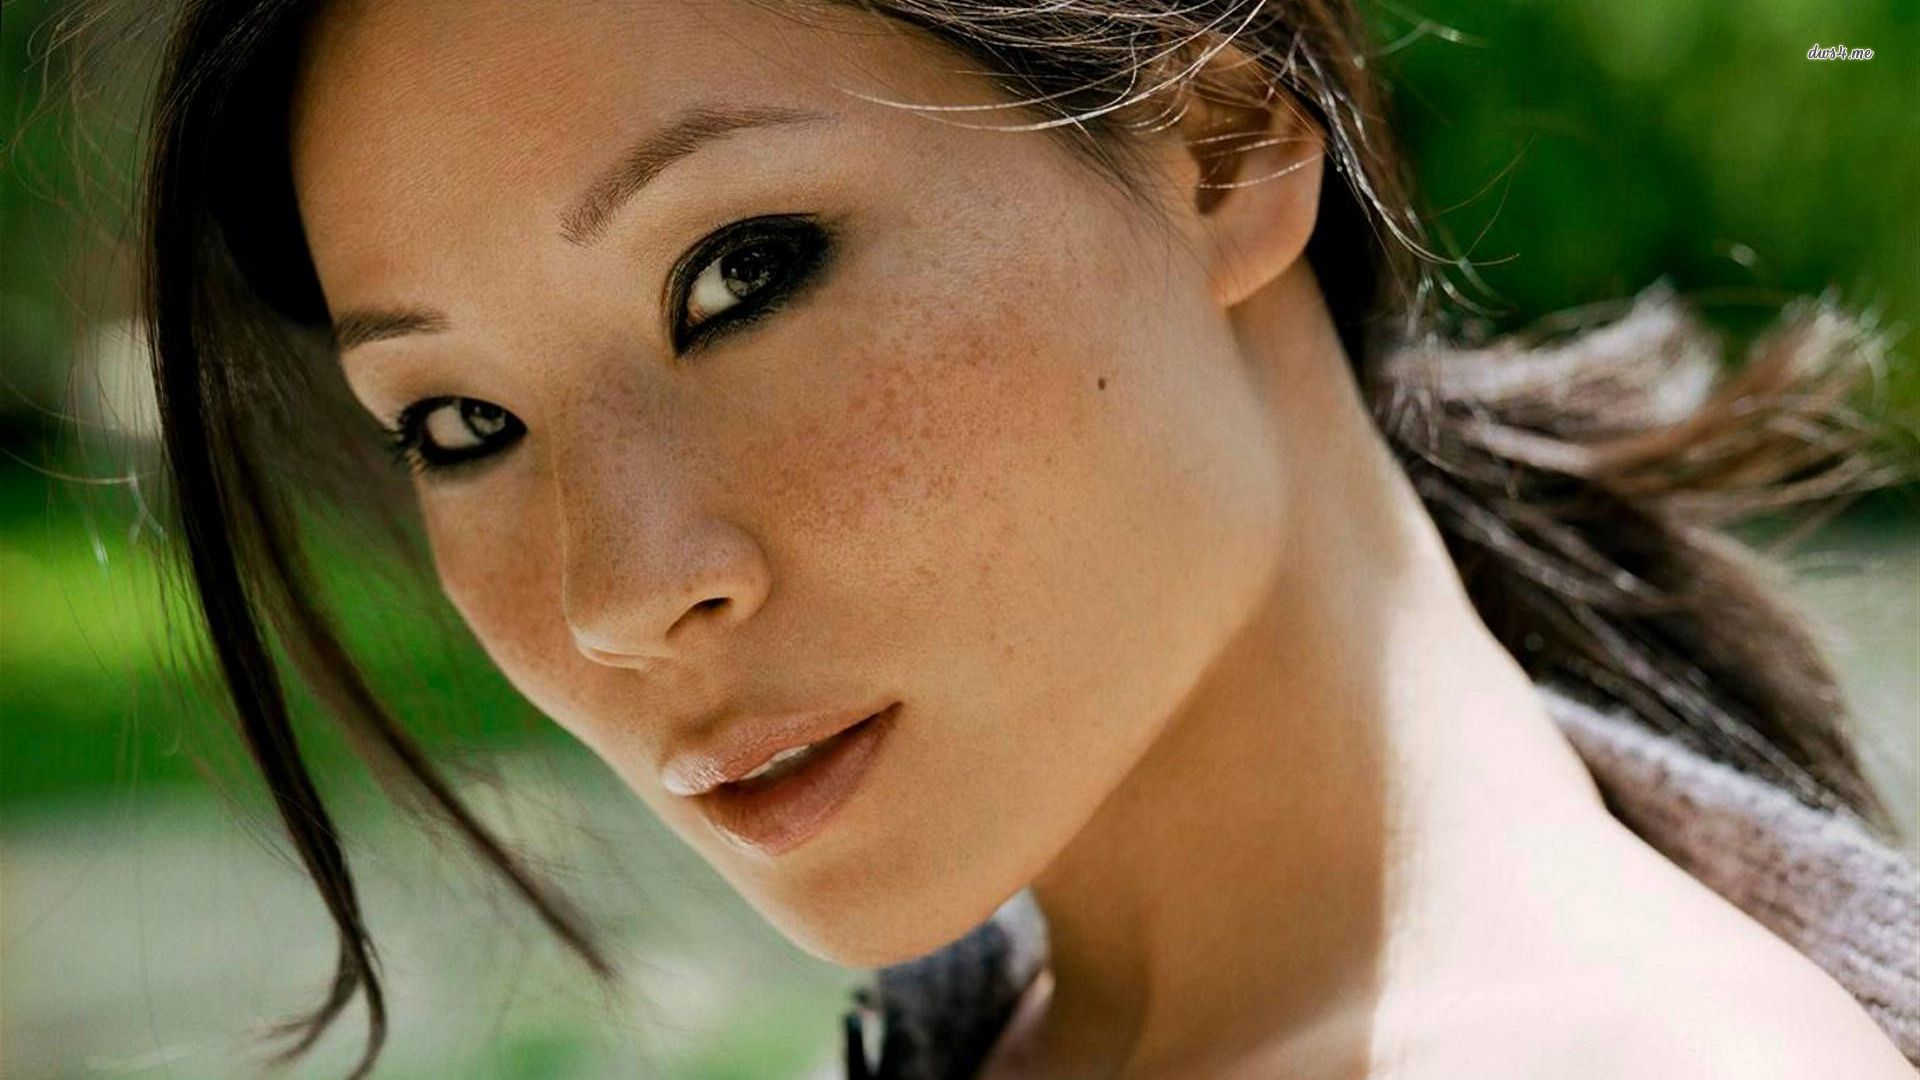 lucy liu free wallpaper - photo #16